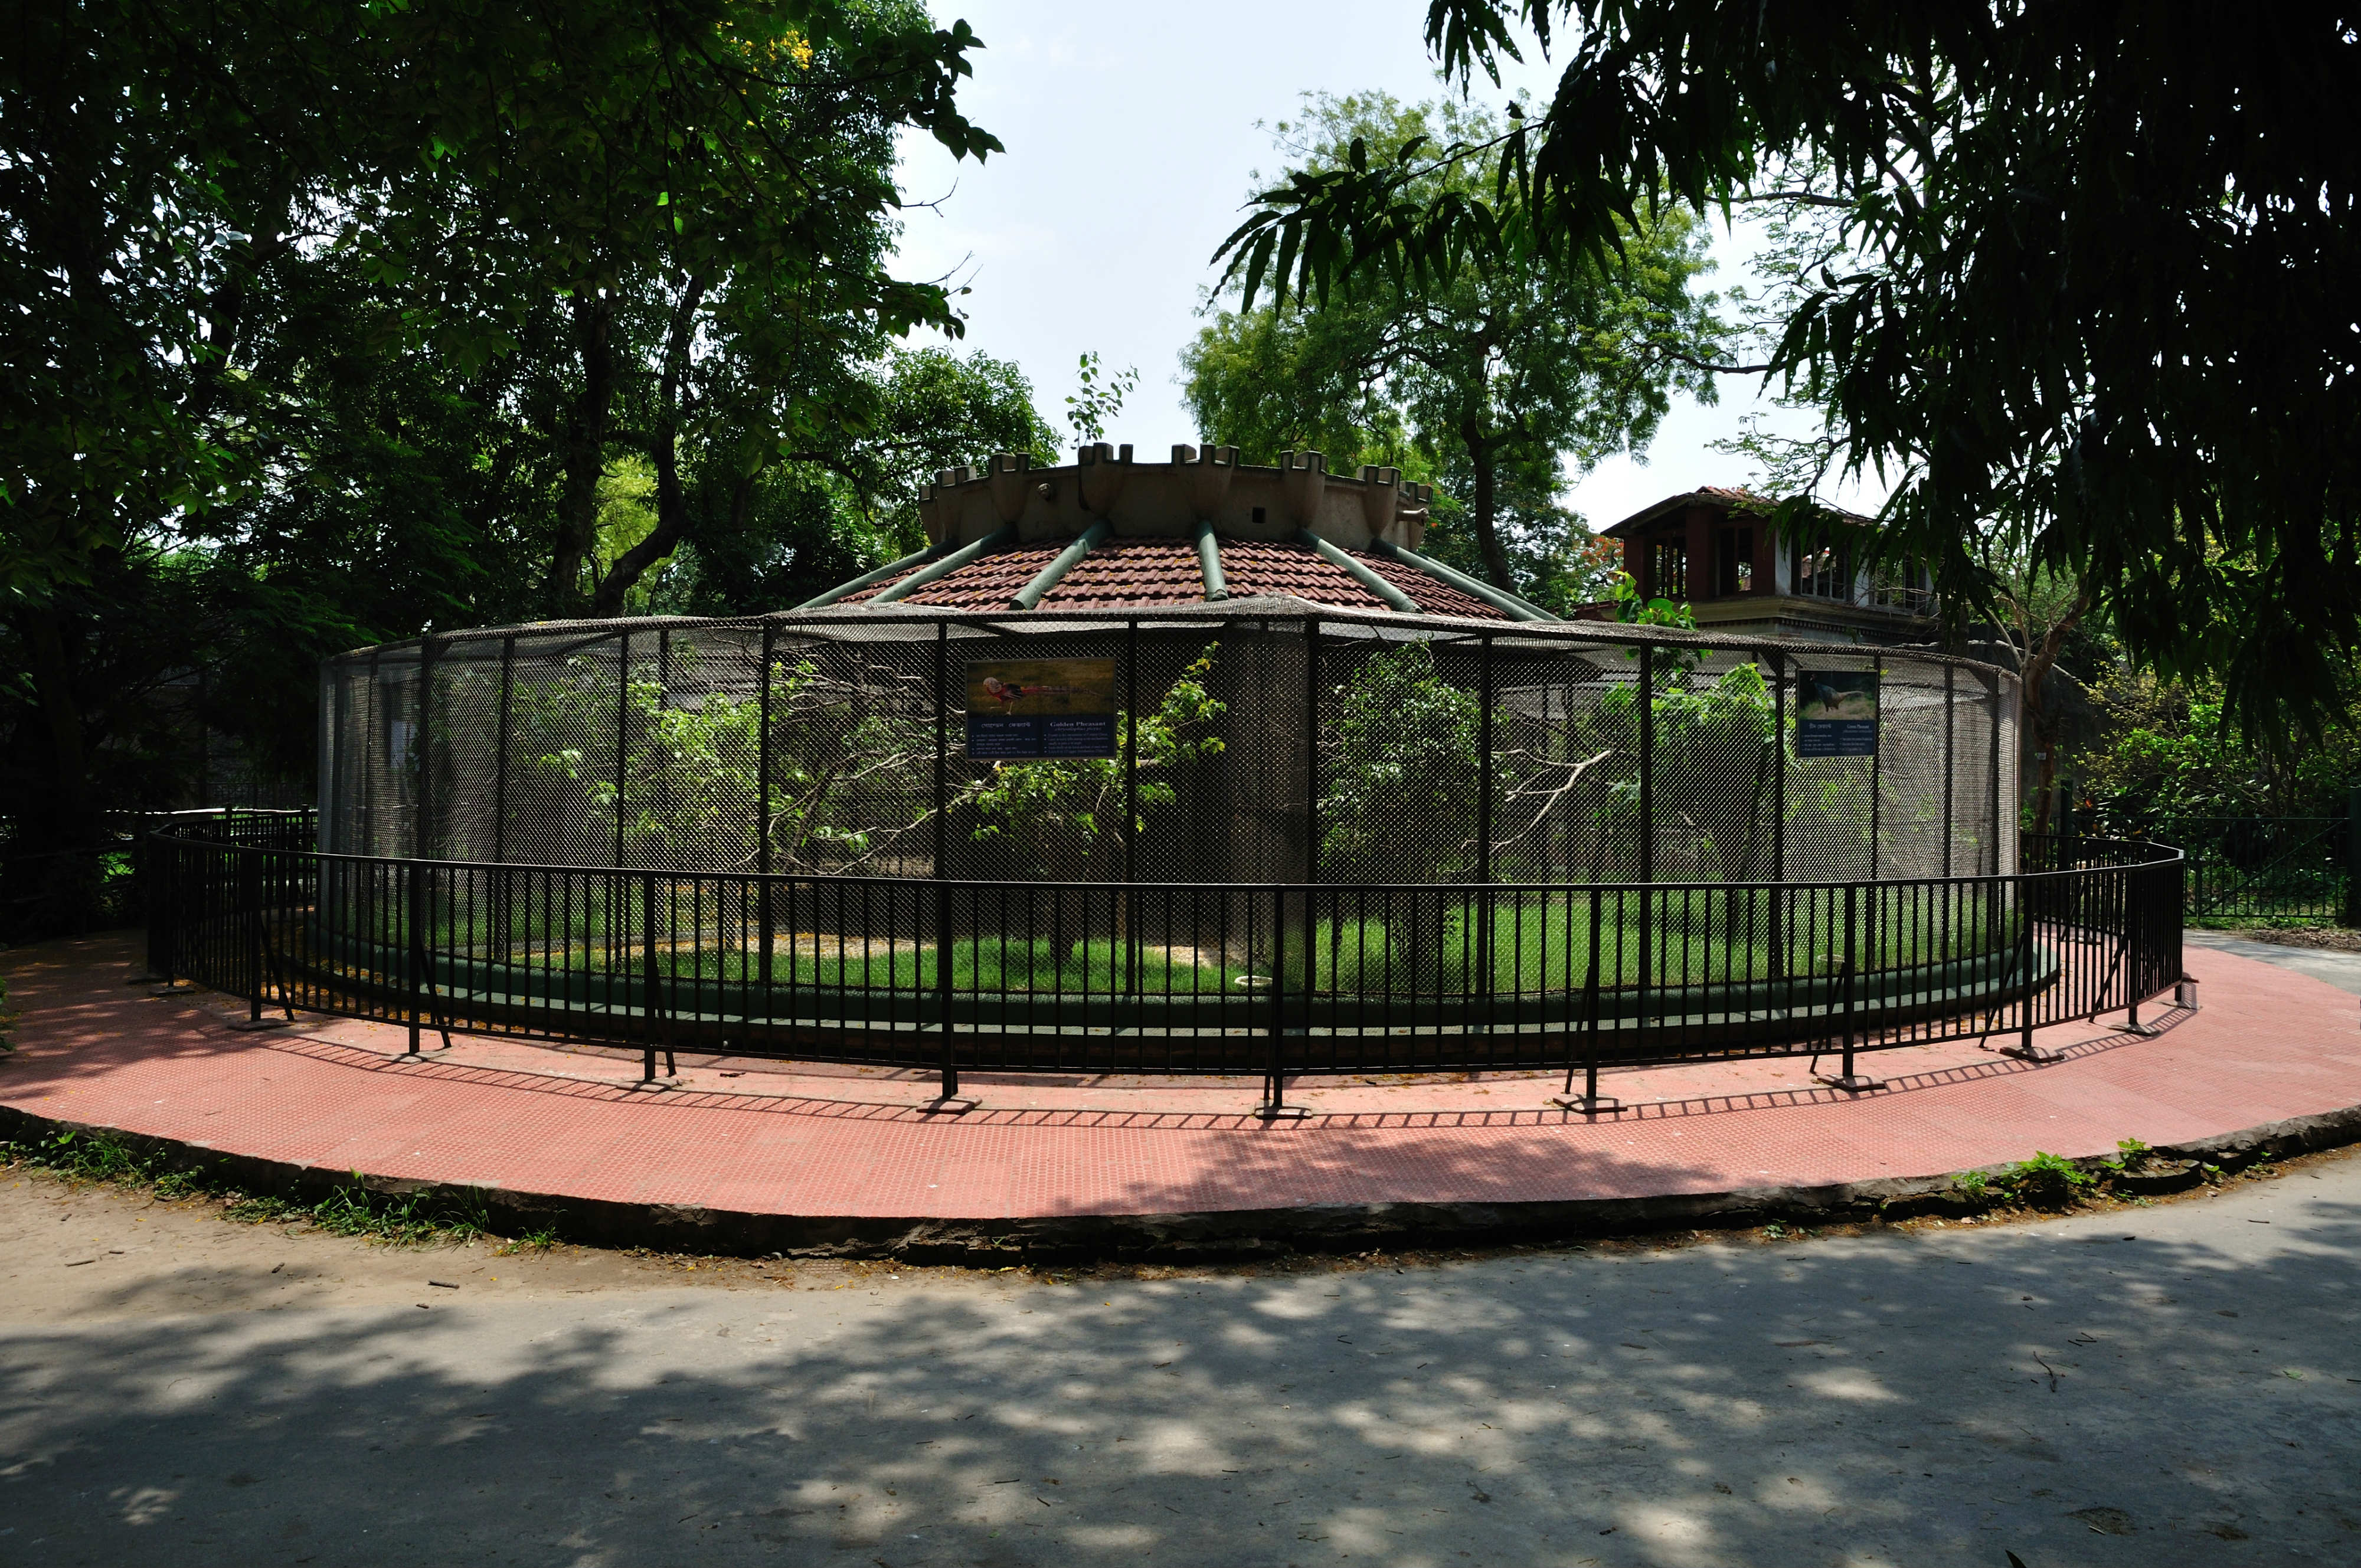 essay on a visit to alipore zoo